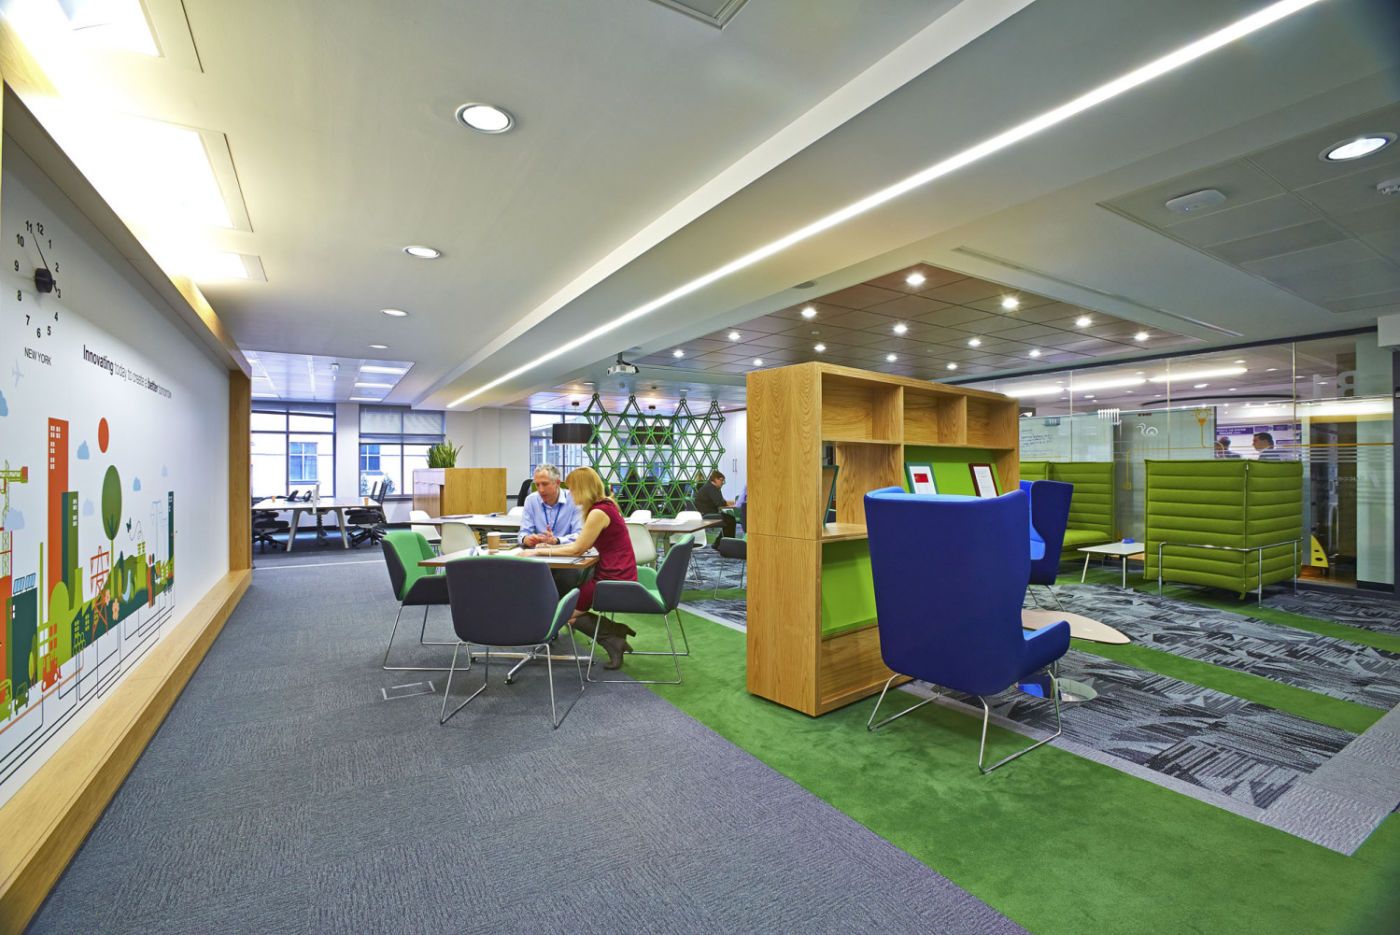 Staff meeting in an open plan seating area